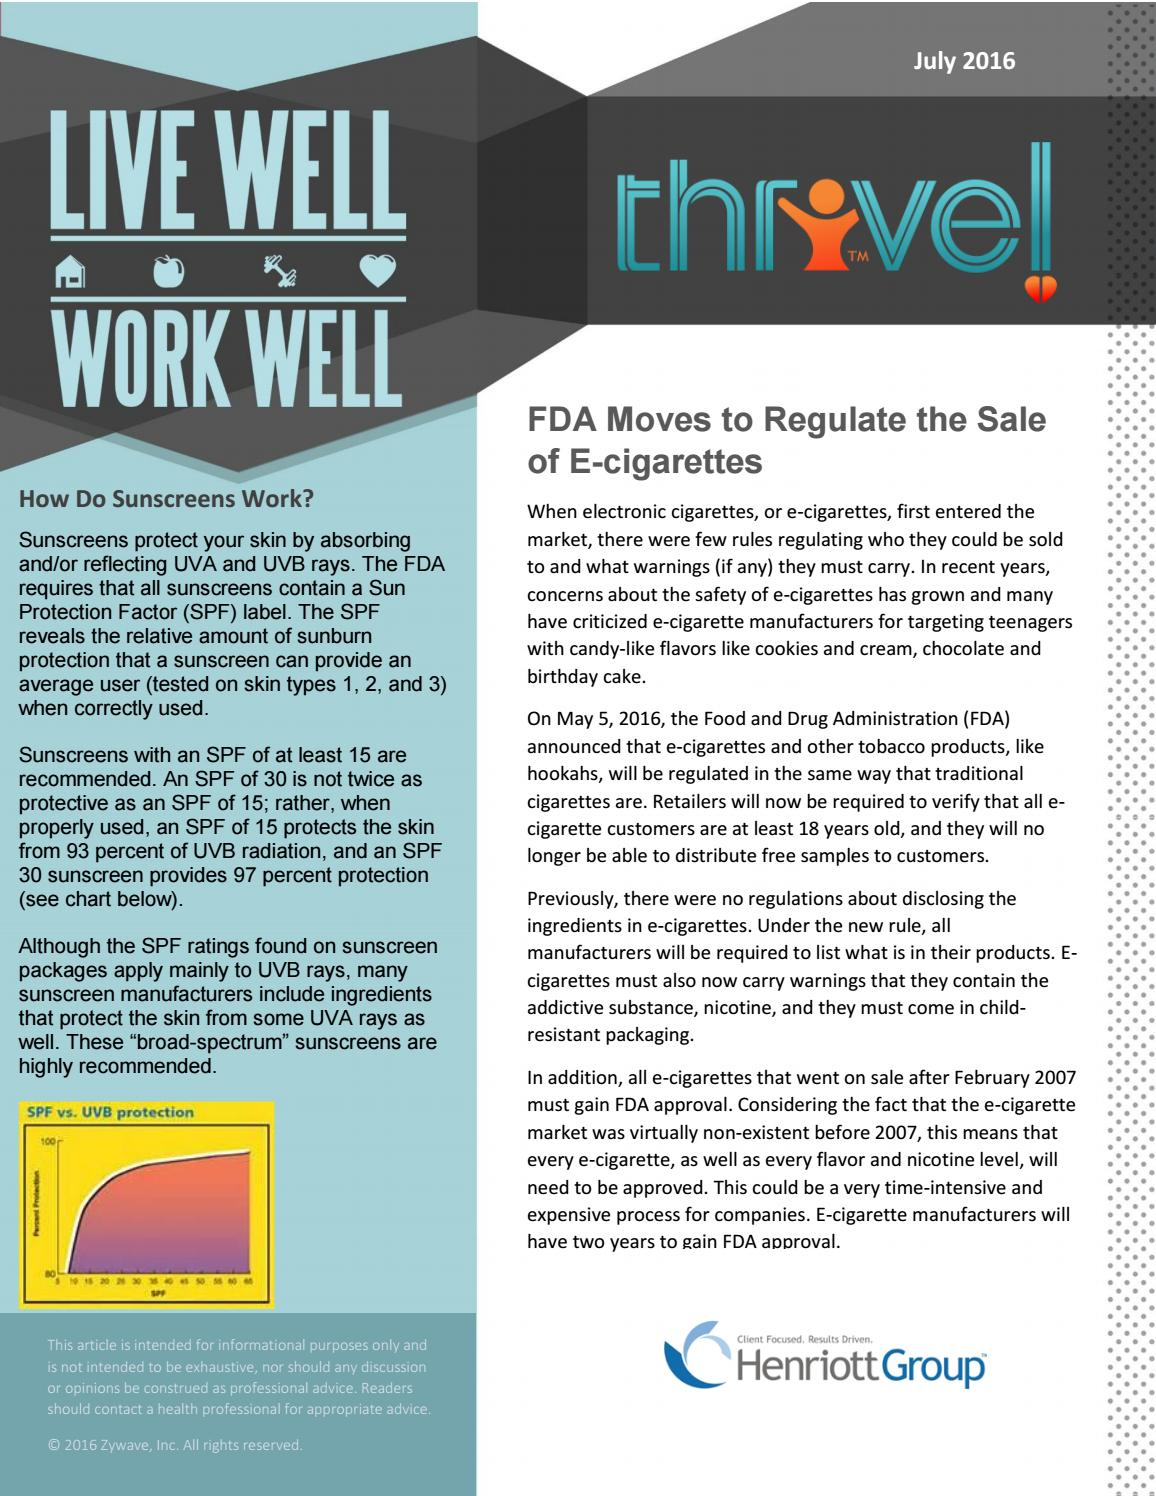 live well, work well | July 2016 by Henriott Group, Inc  - issuu